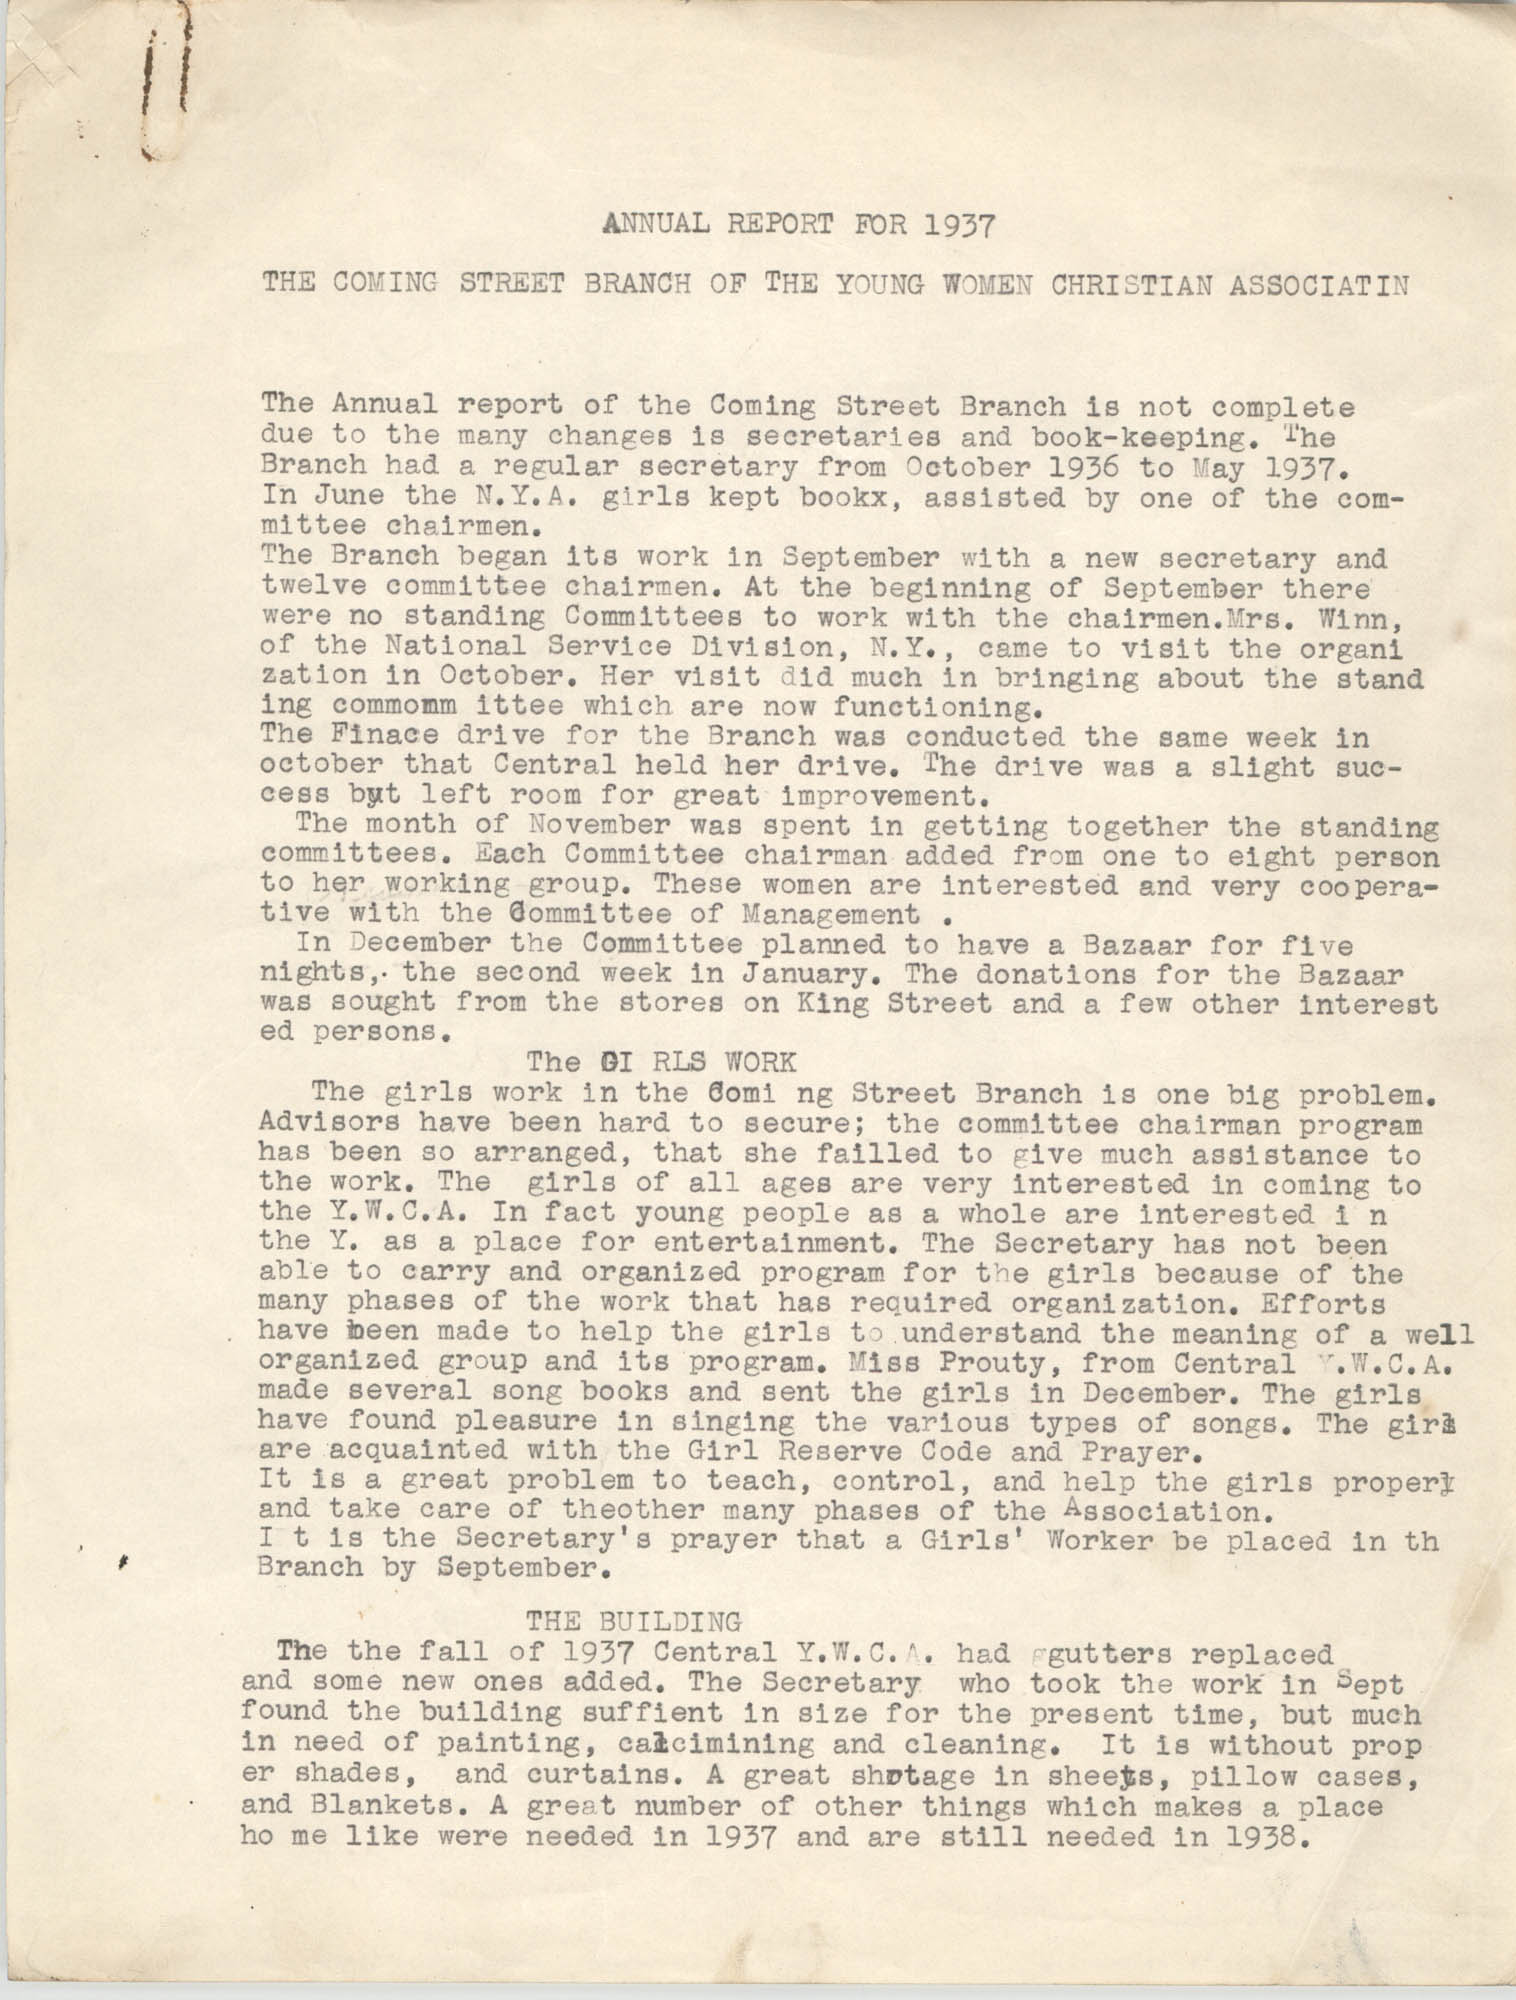 Coming Street Y.W.C.A. Annual Report for 1937